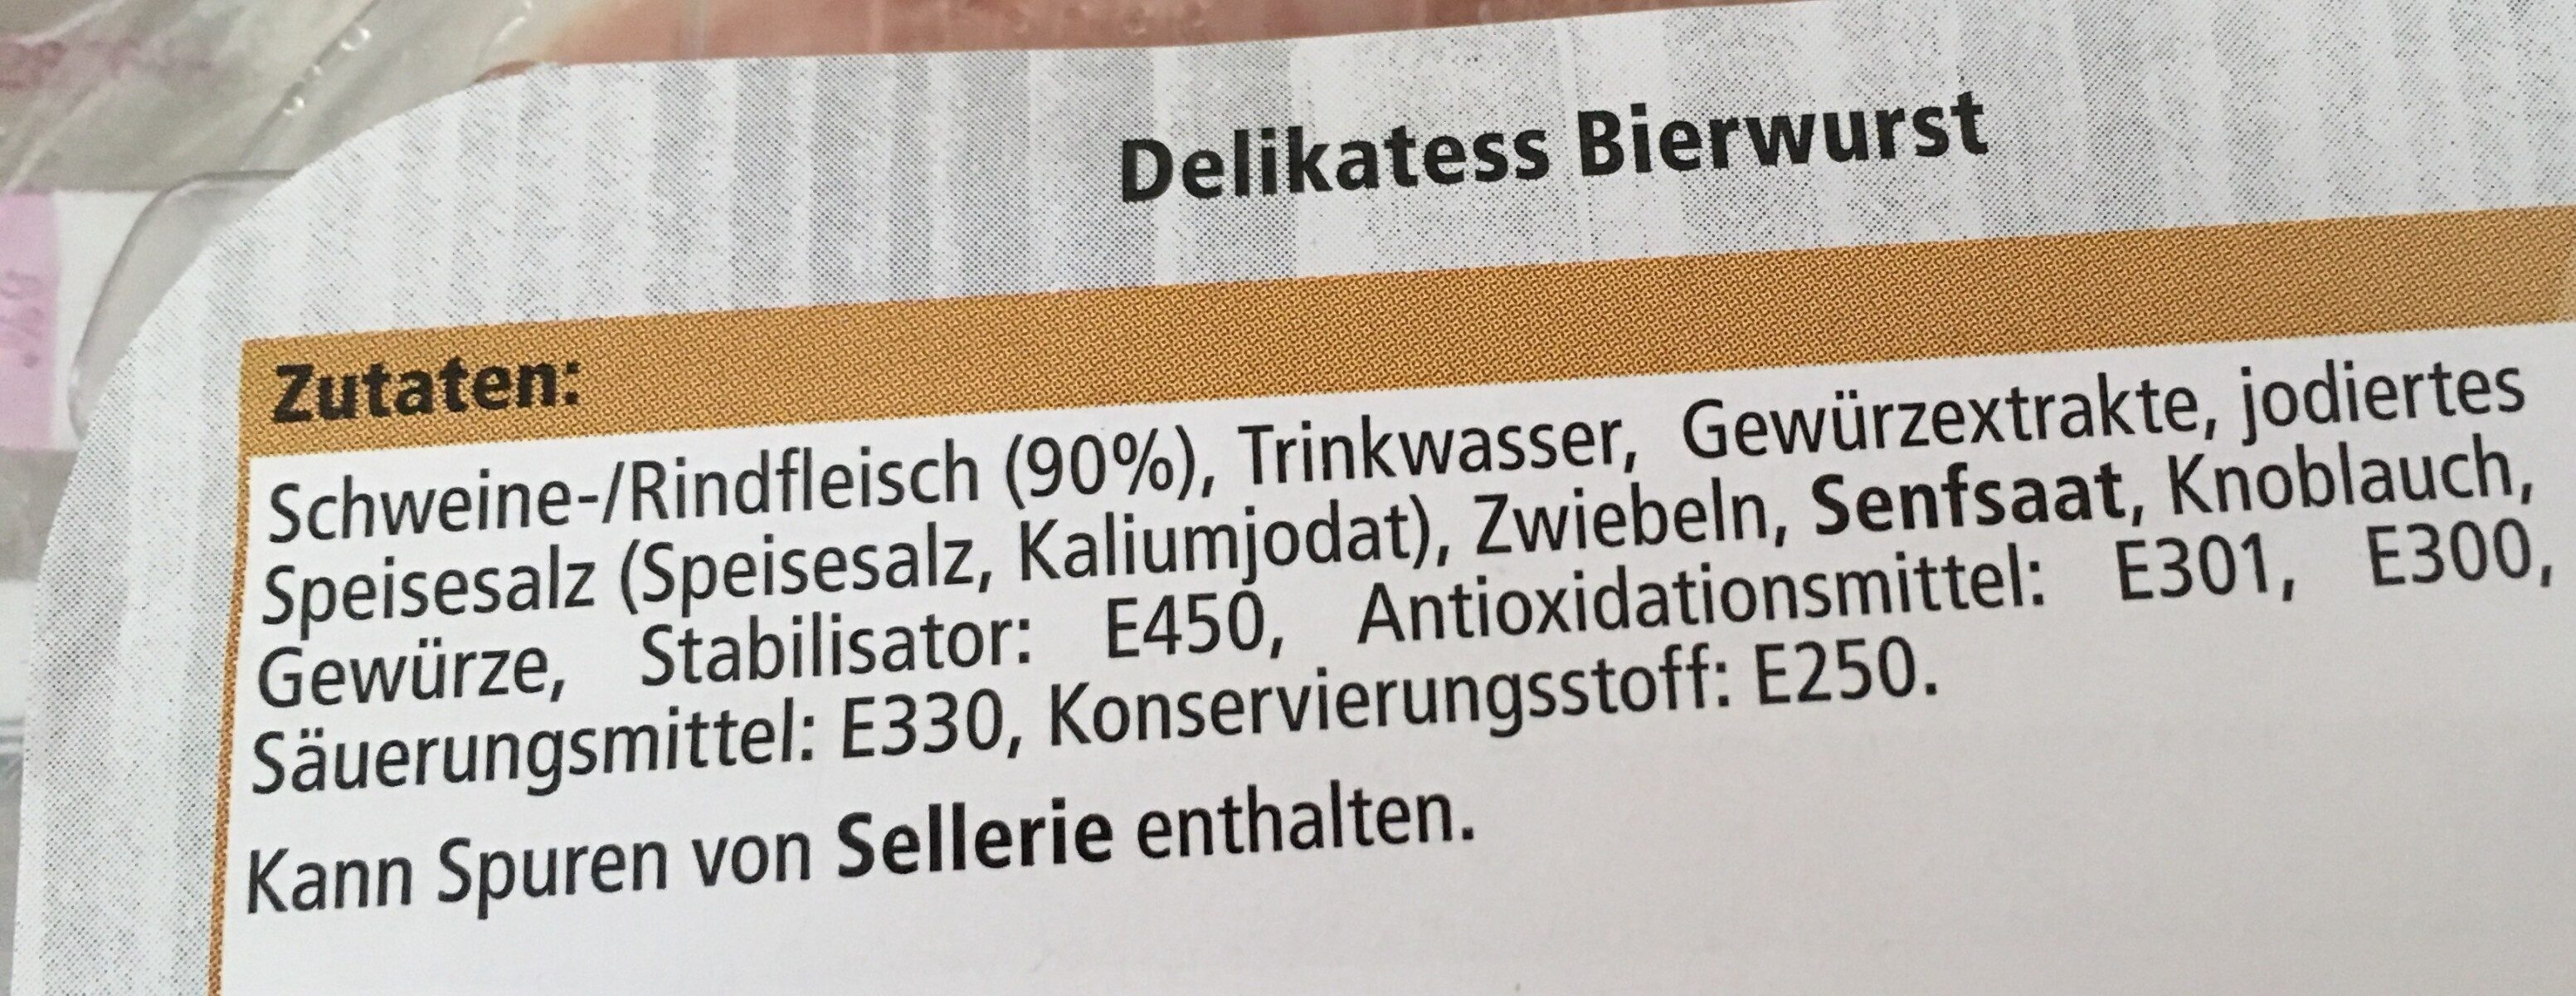 Delikatess Bierwurst - Ingredients - de